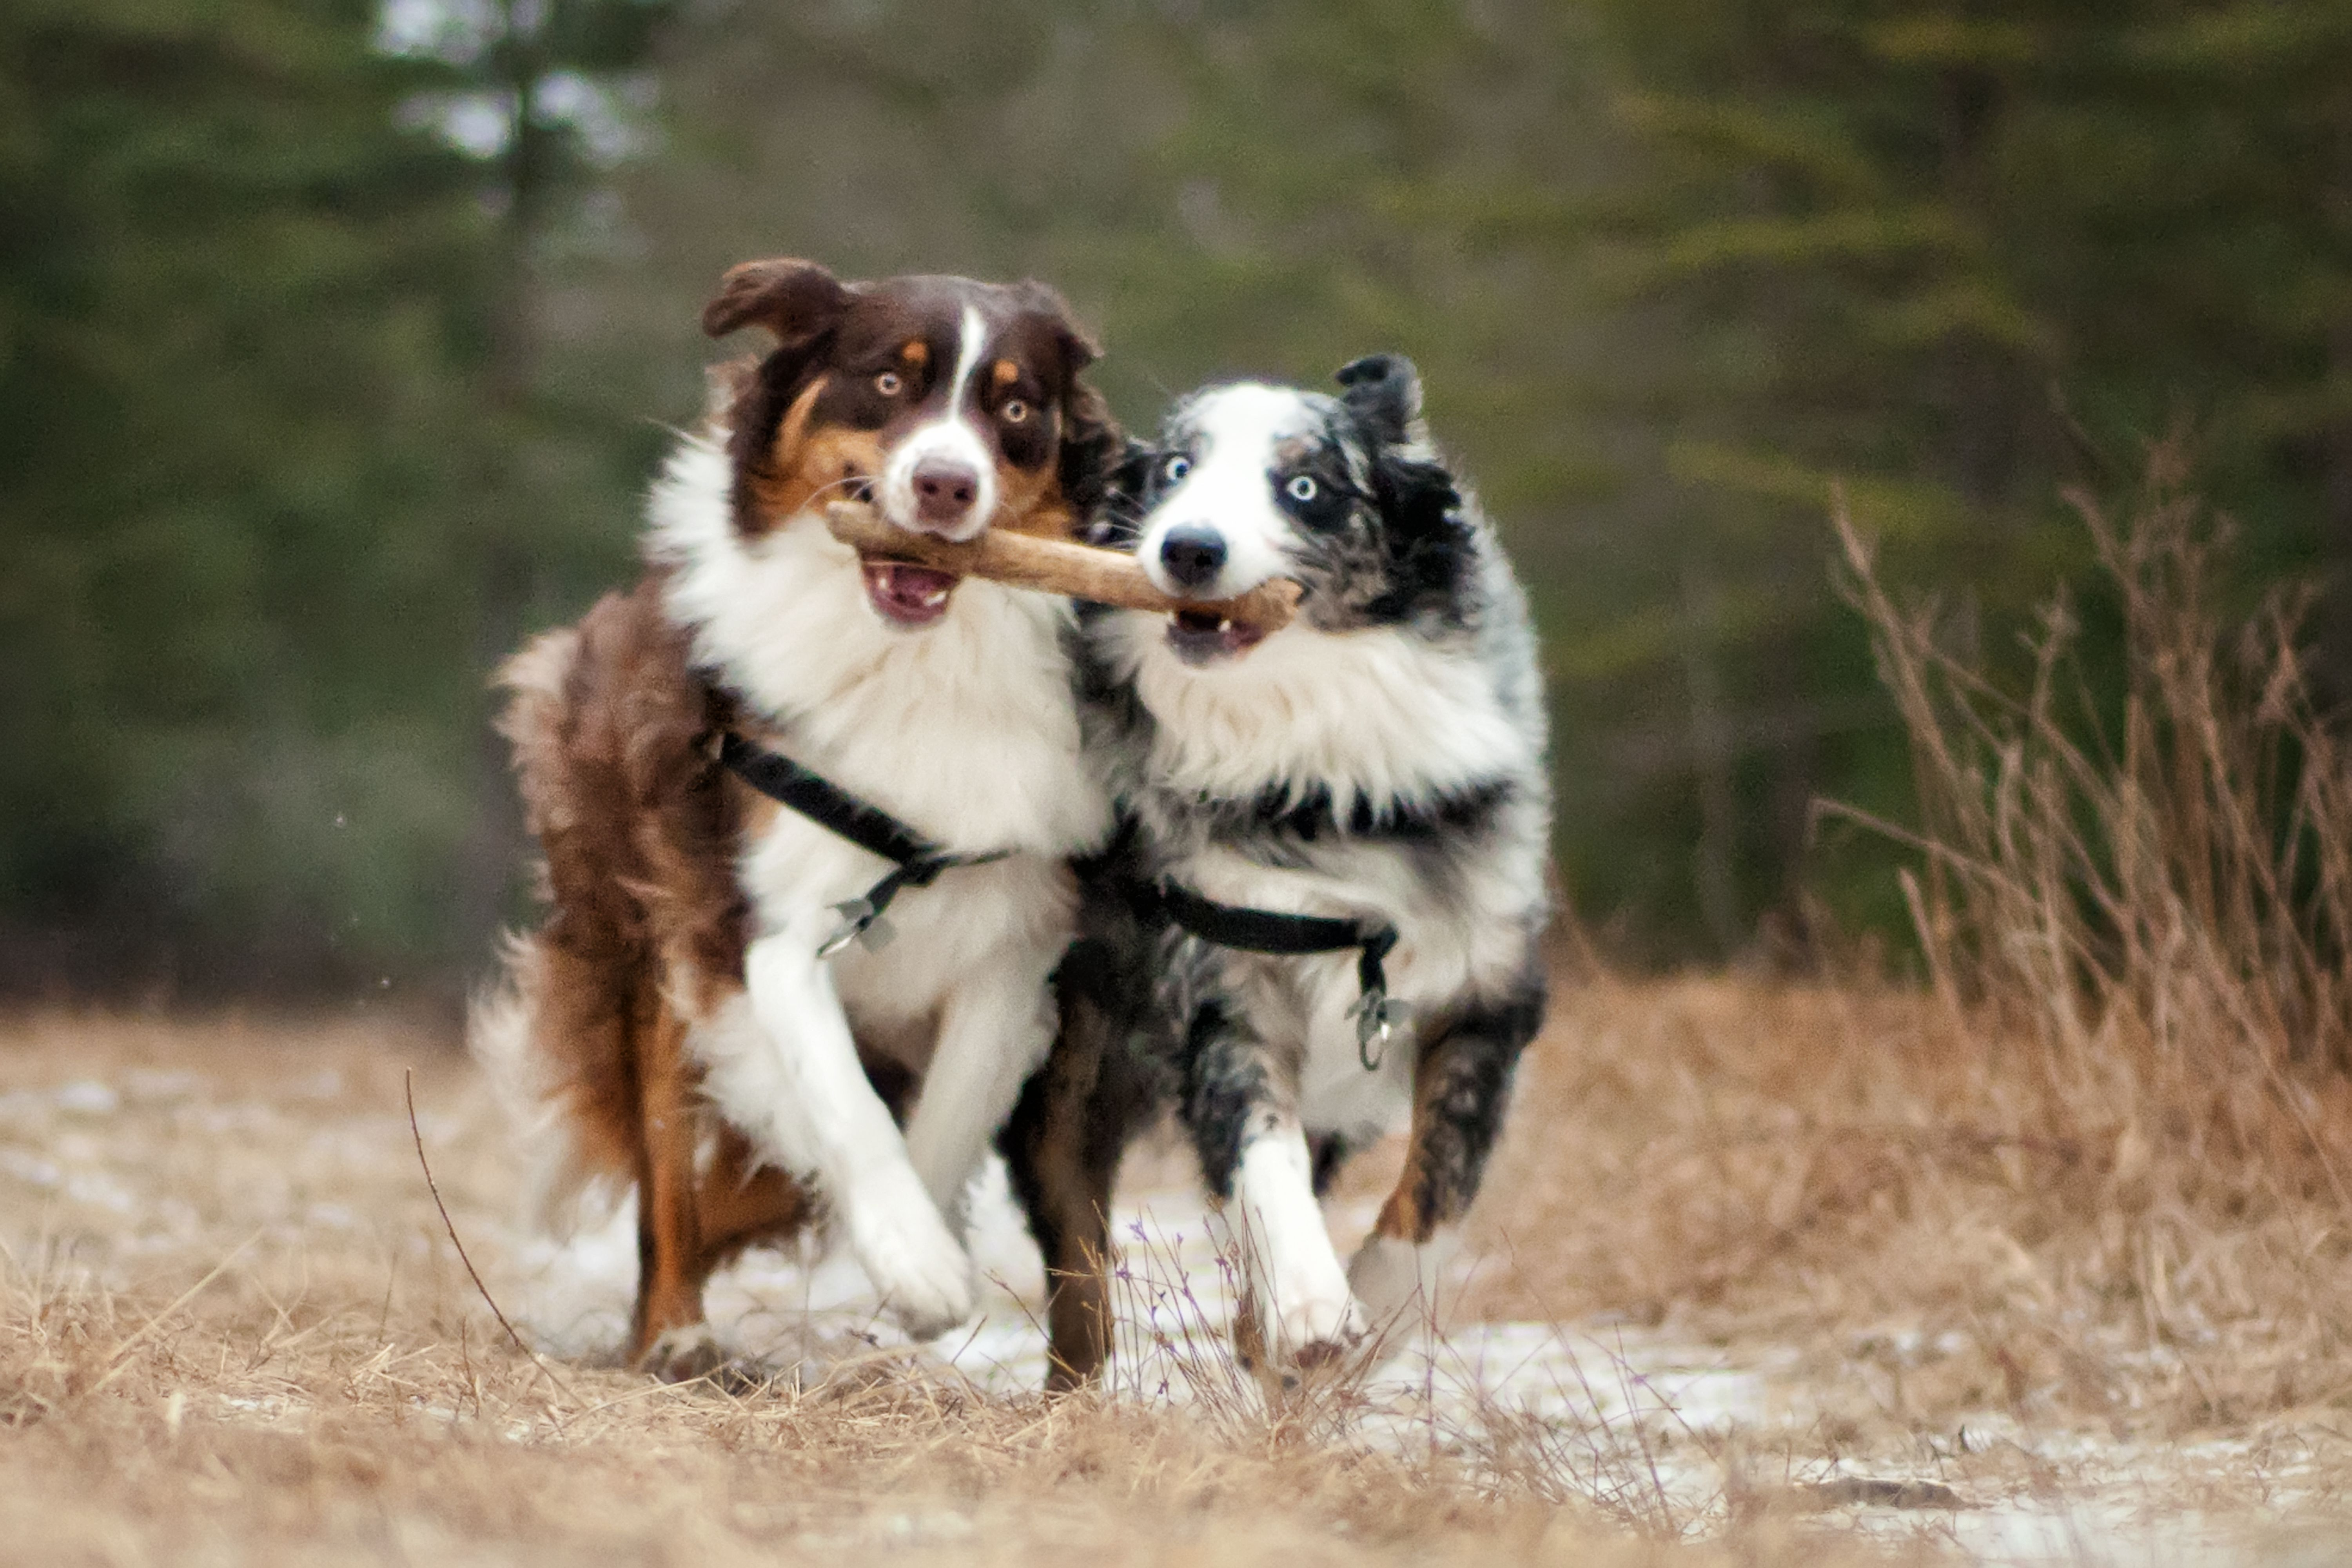 two dogs walking in step holding a stick